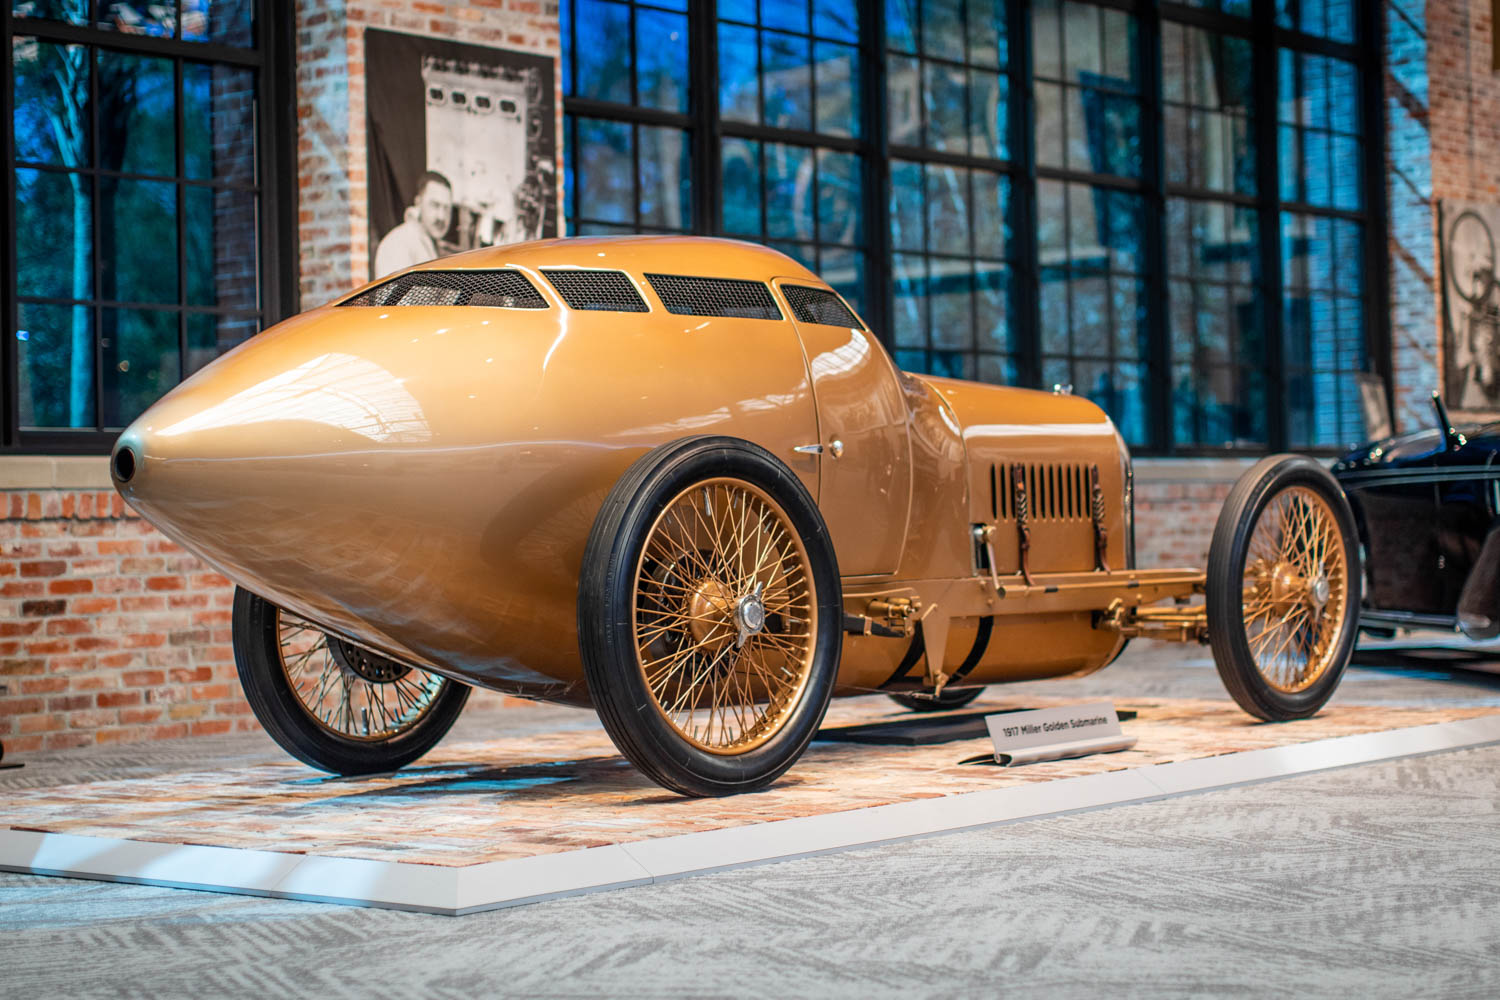 The 1917 Miller Golden Submarine driven by Barney Oldfield was an early attempt at aerodynamics.